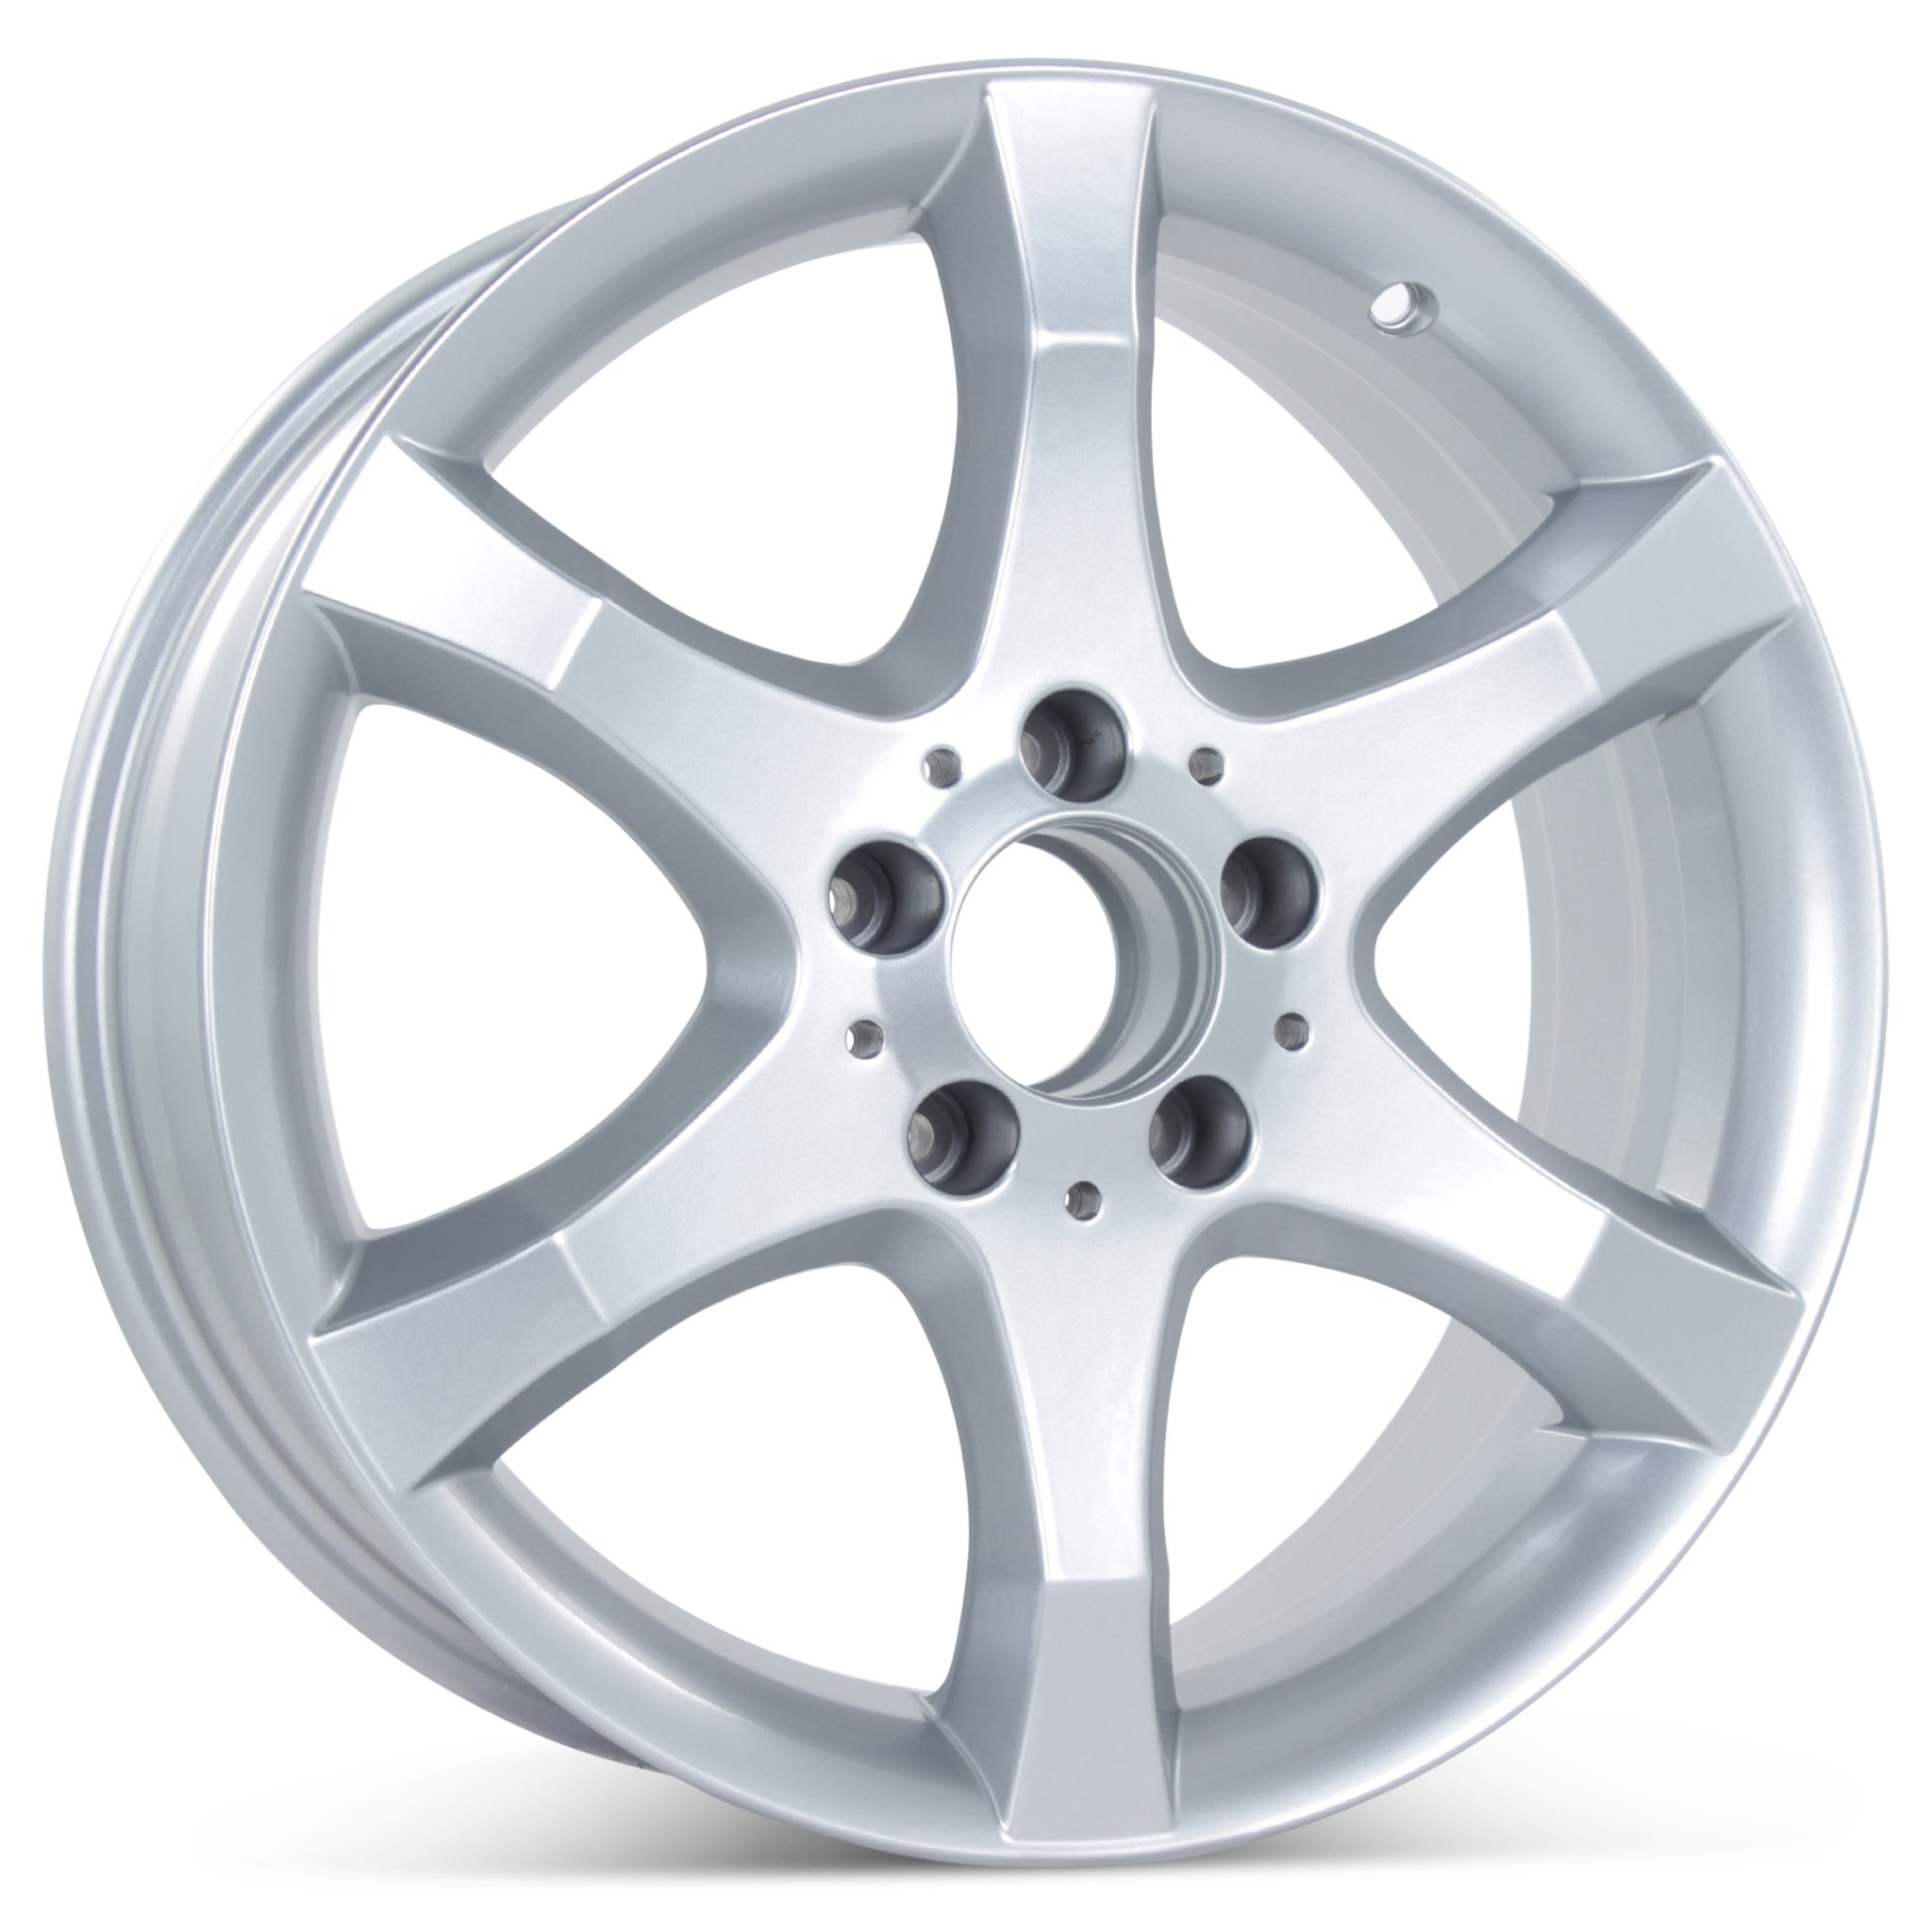 New 17'' x 7.5'' Front Replacement Wheel for Mercedes C230 C350 2007 Rim 65436